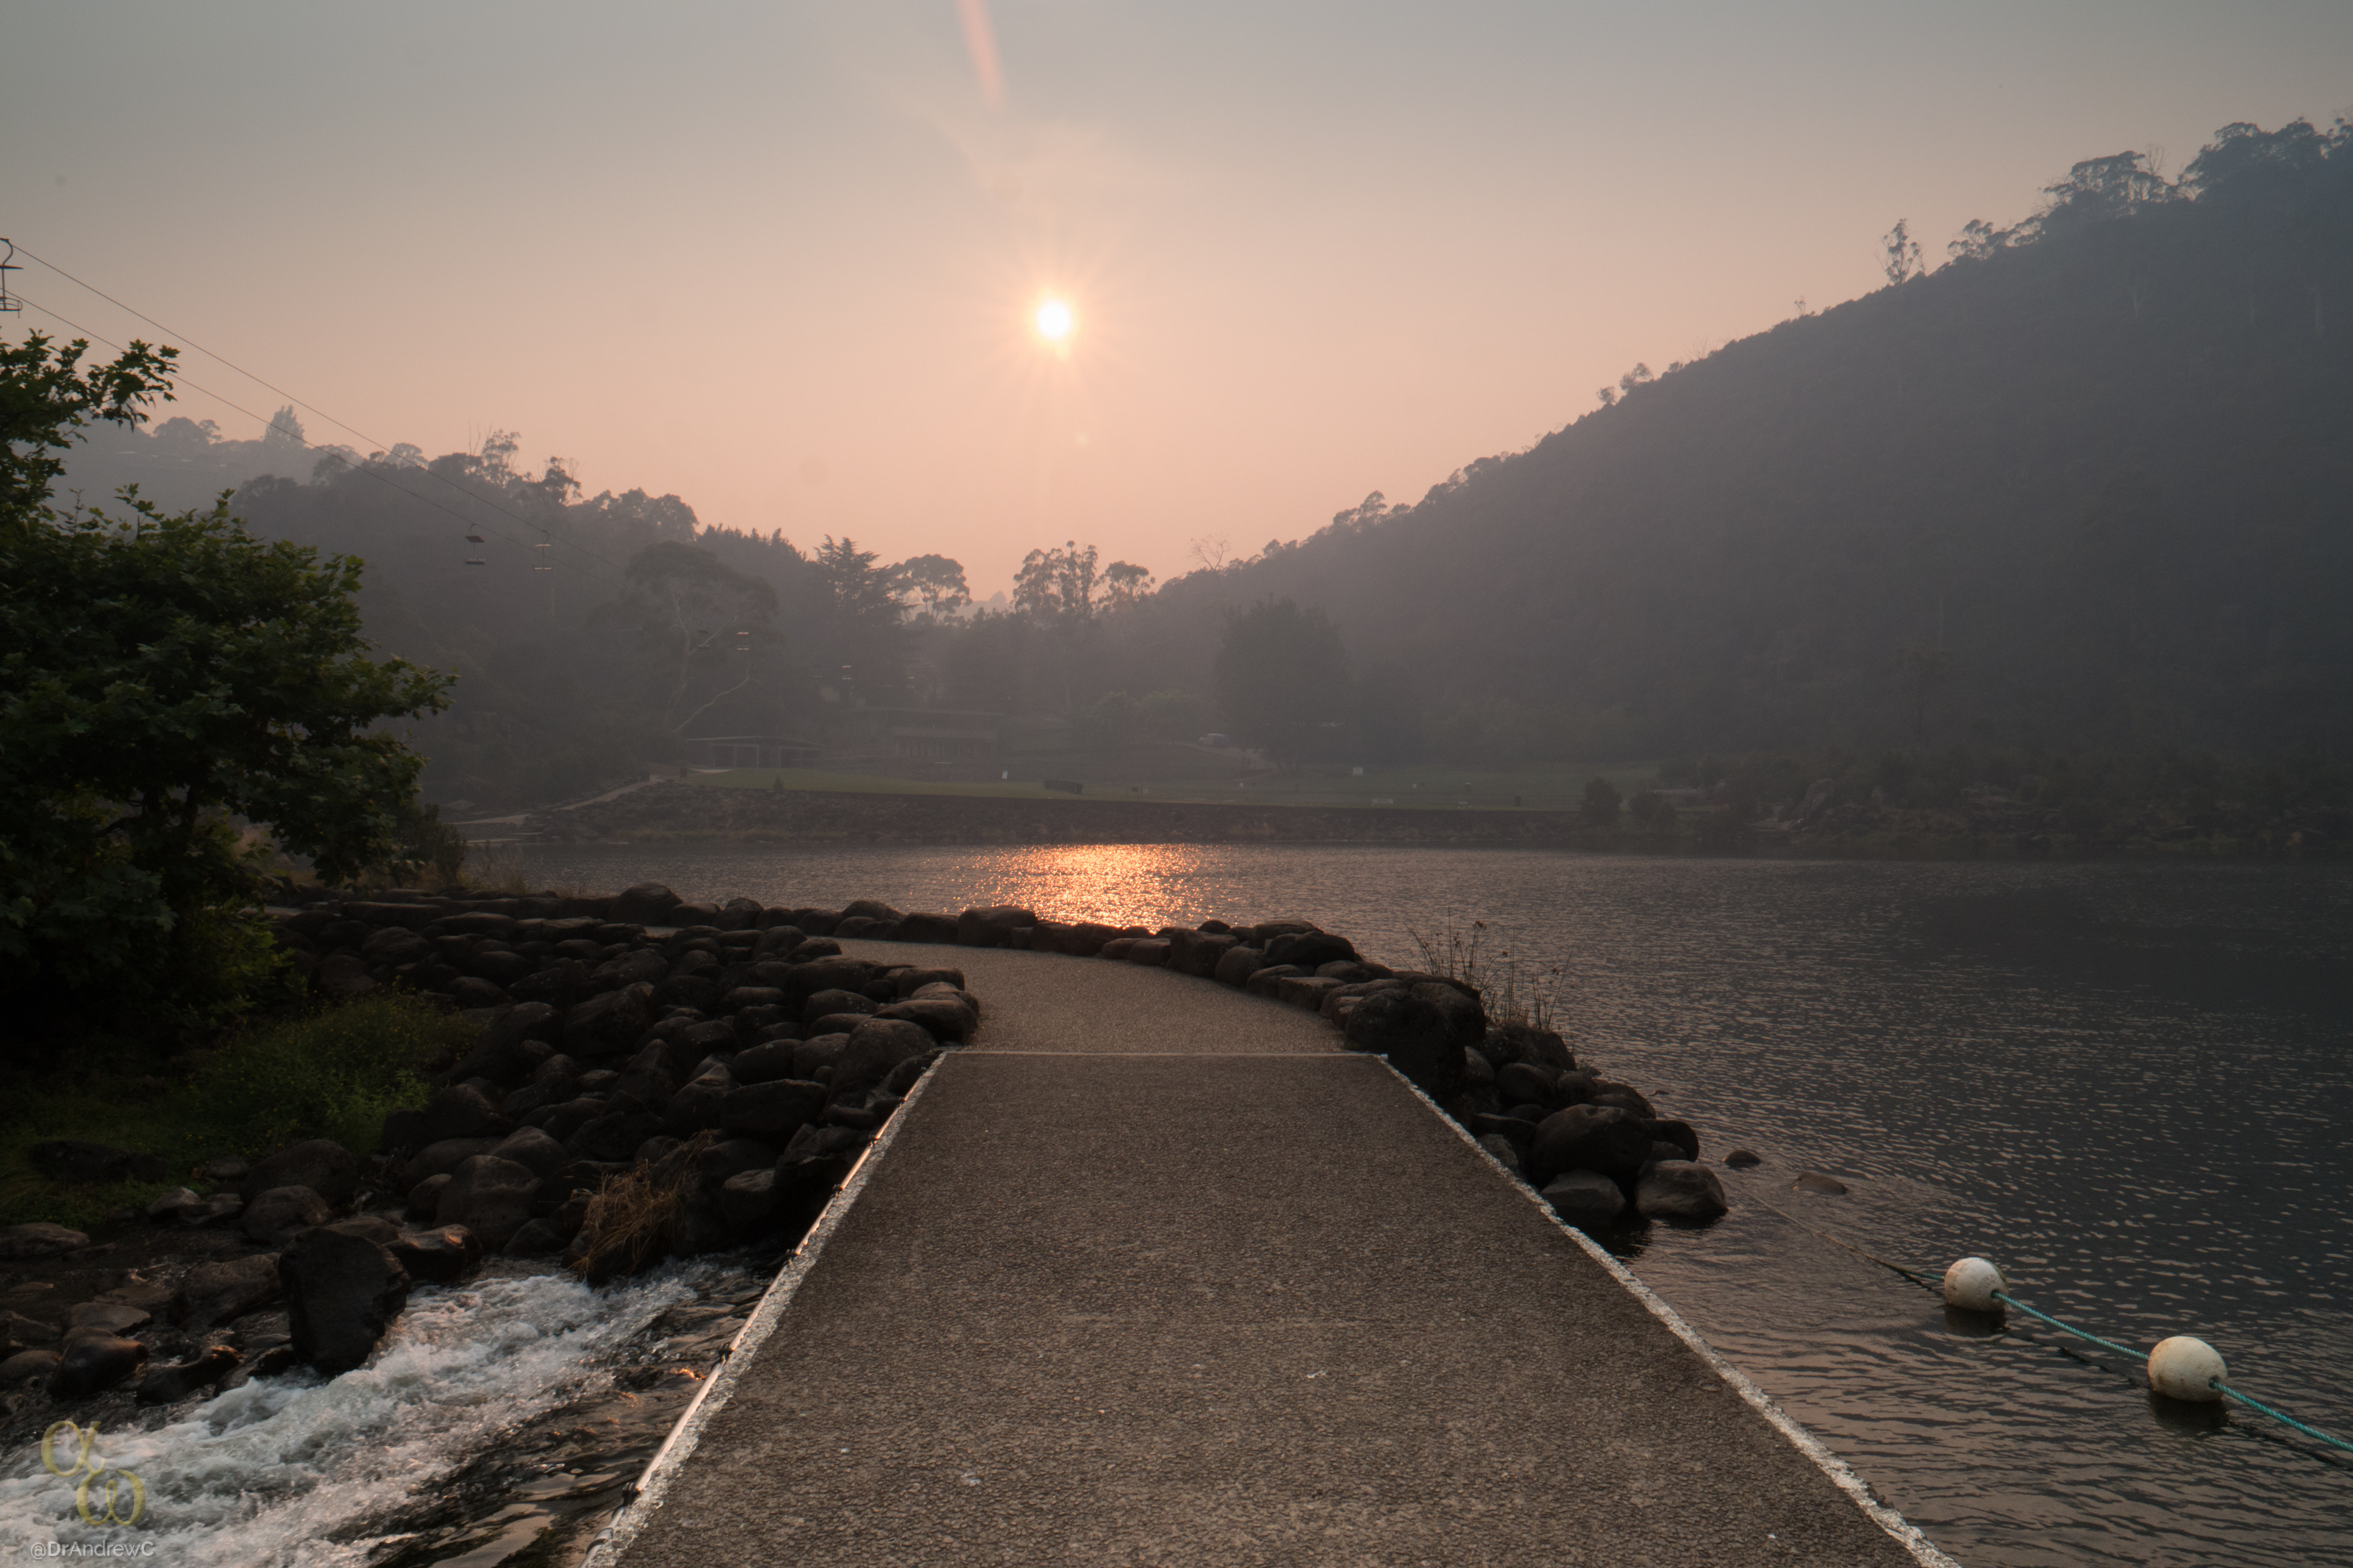 Cataract Gorge covered in smoke haze